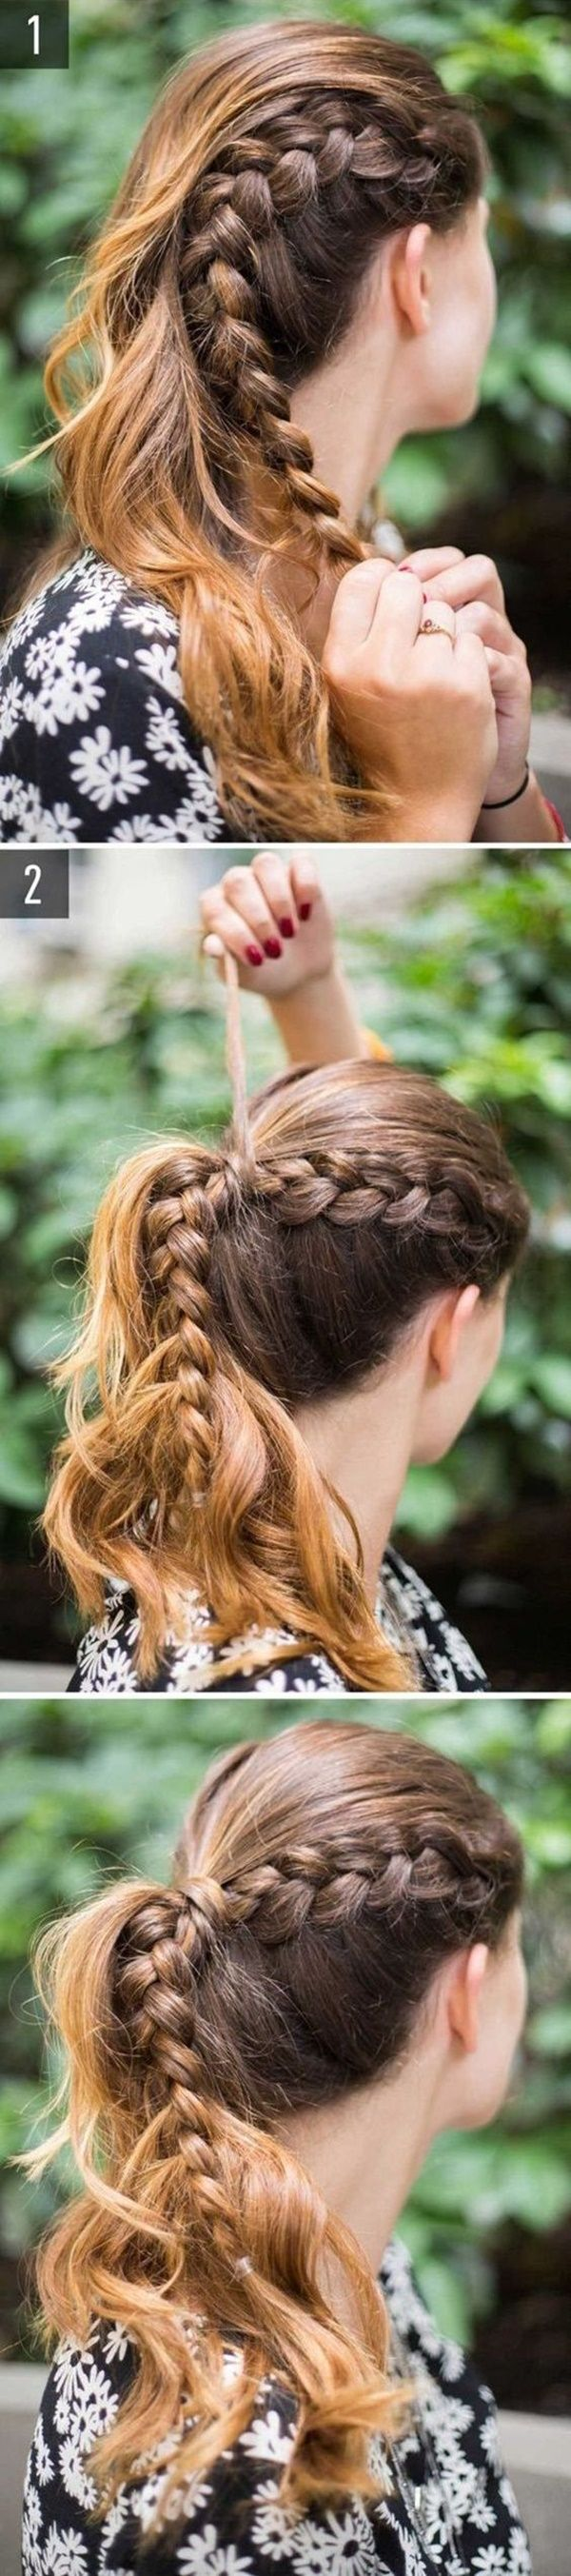 We hope that our latest collection of easy step by step hairstyles for girls may prove beneficial to you as we tried hard to freshen up your morning routine